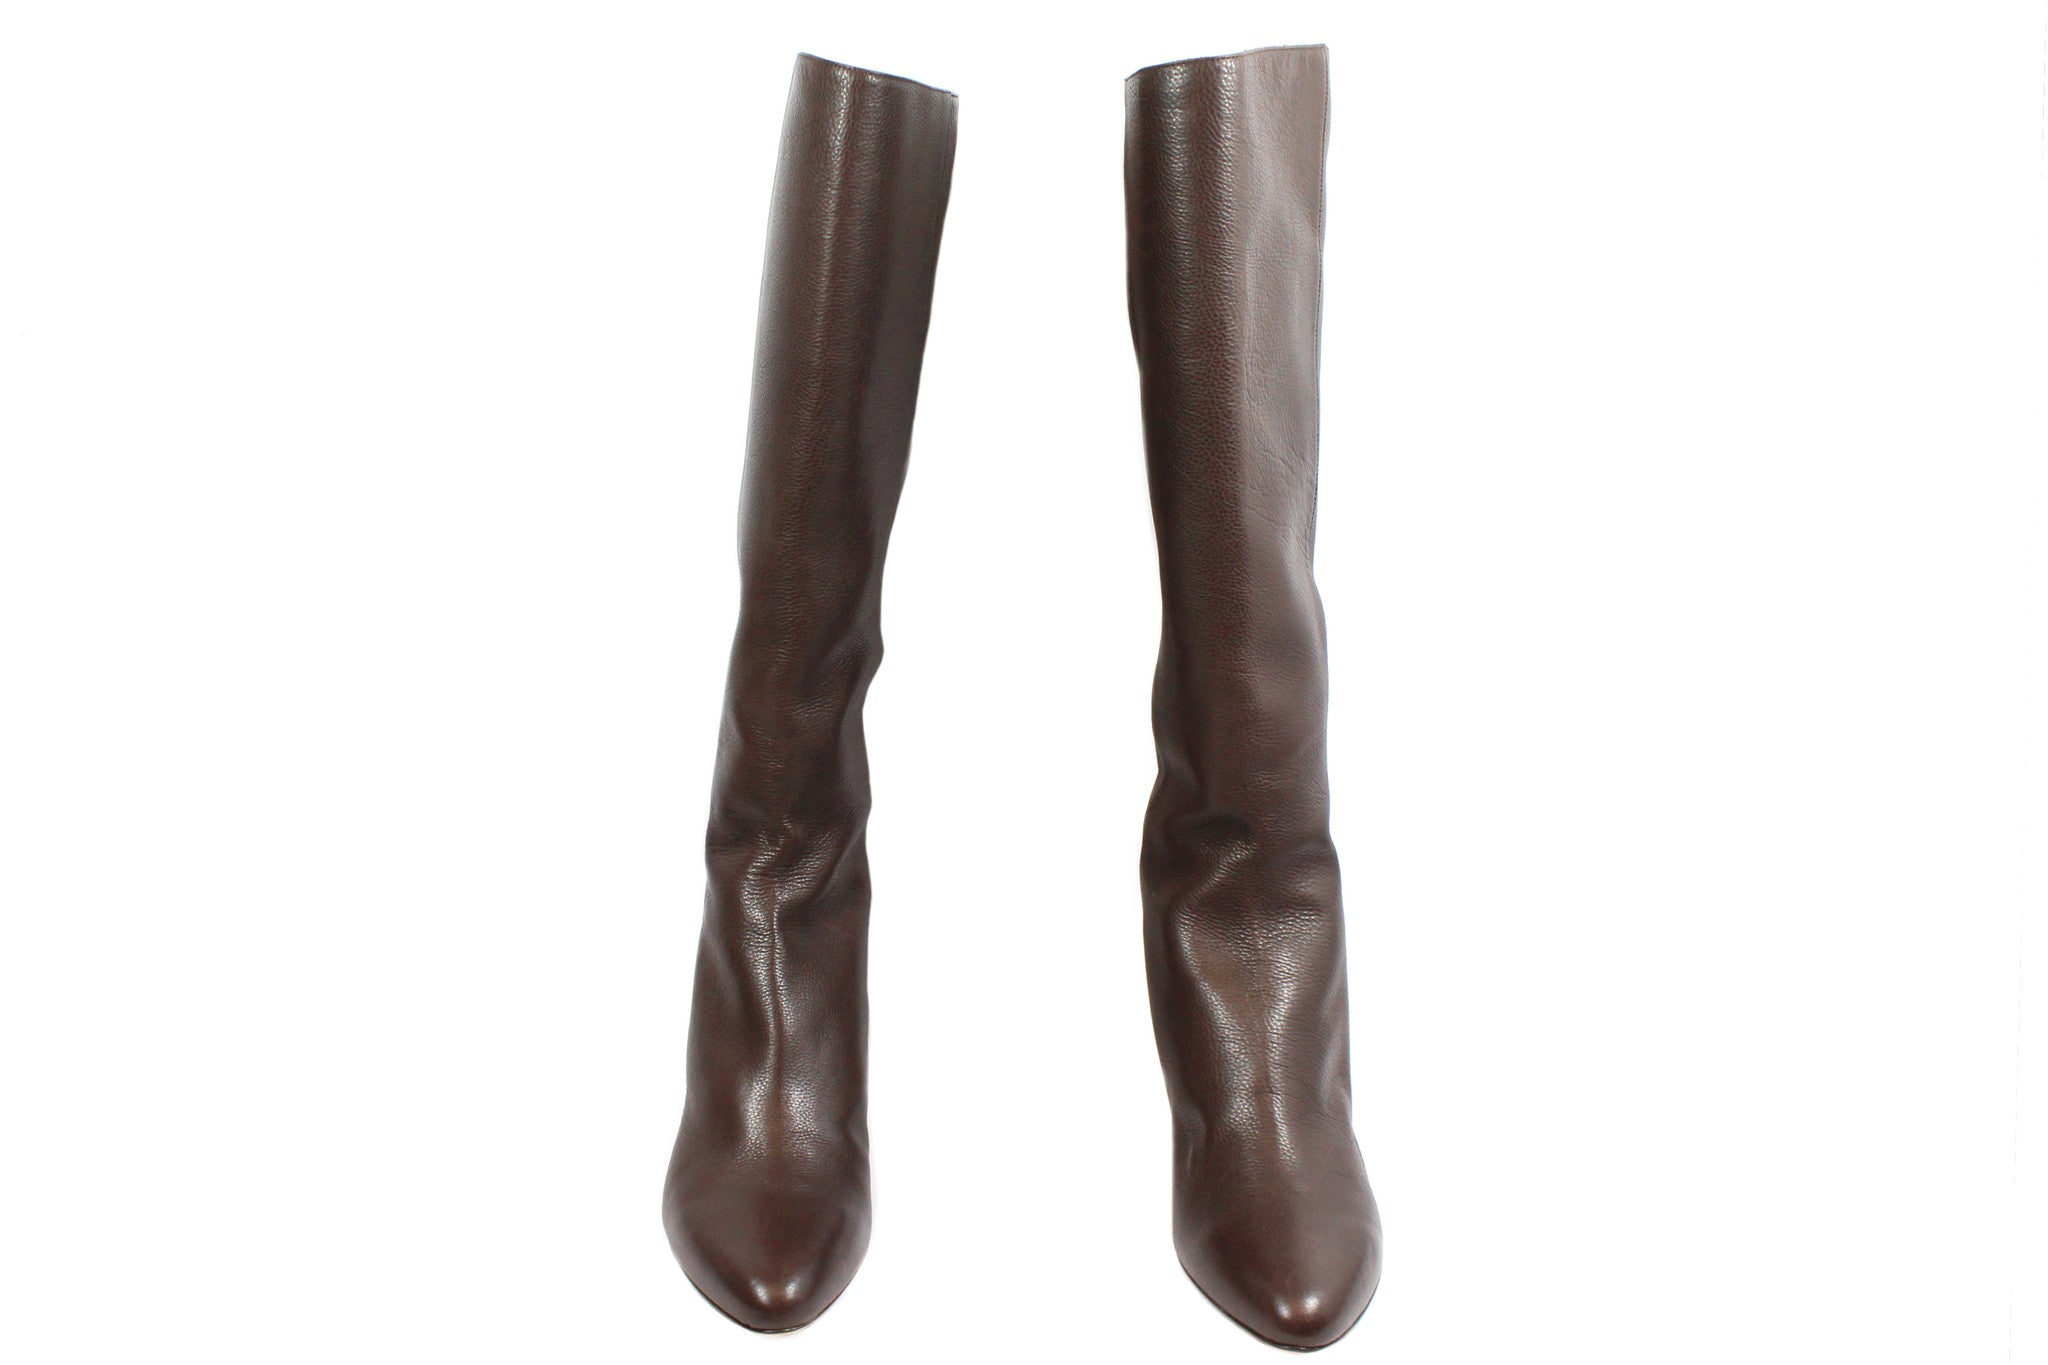 Jimmy Choo Brown Leather Boots (Size 37) - Encore Consignment - 2